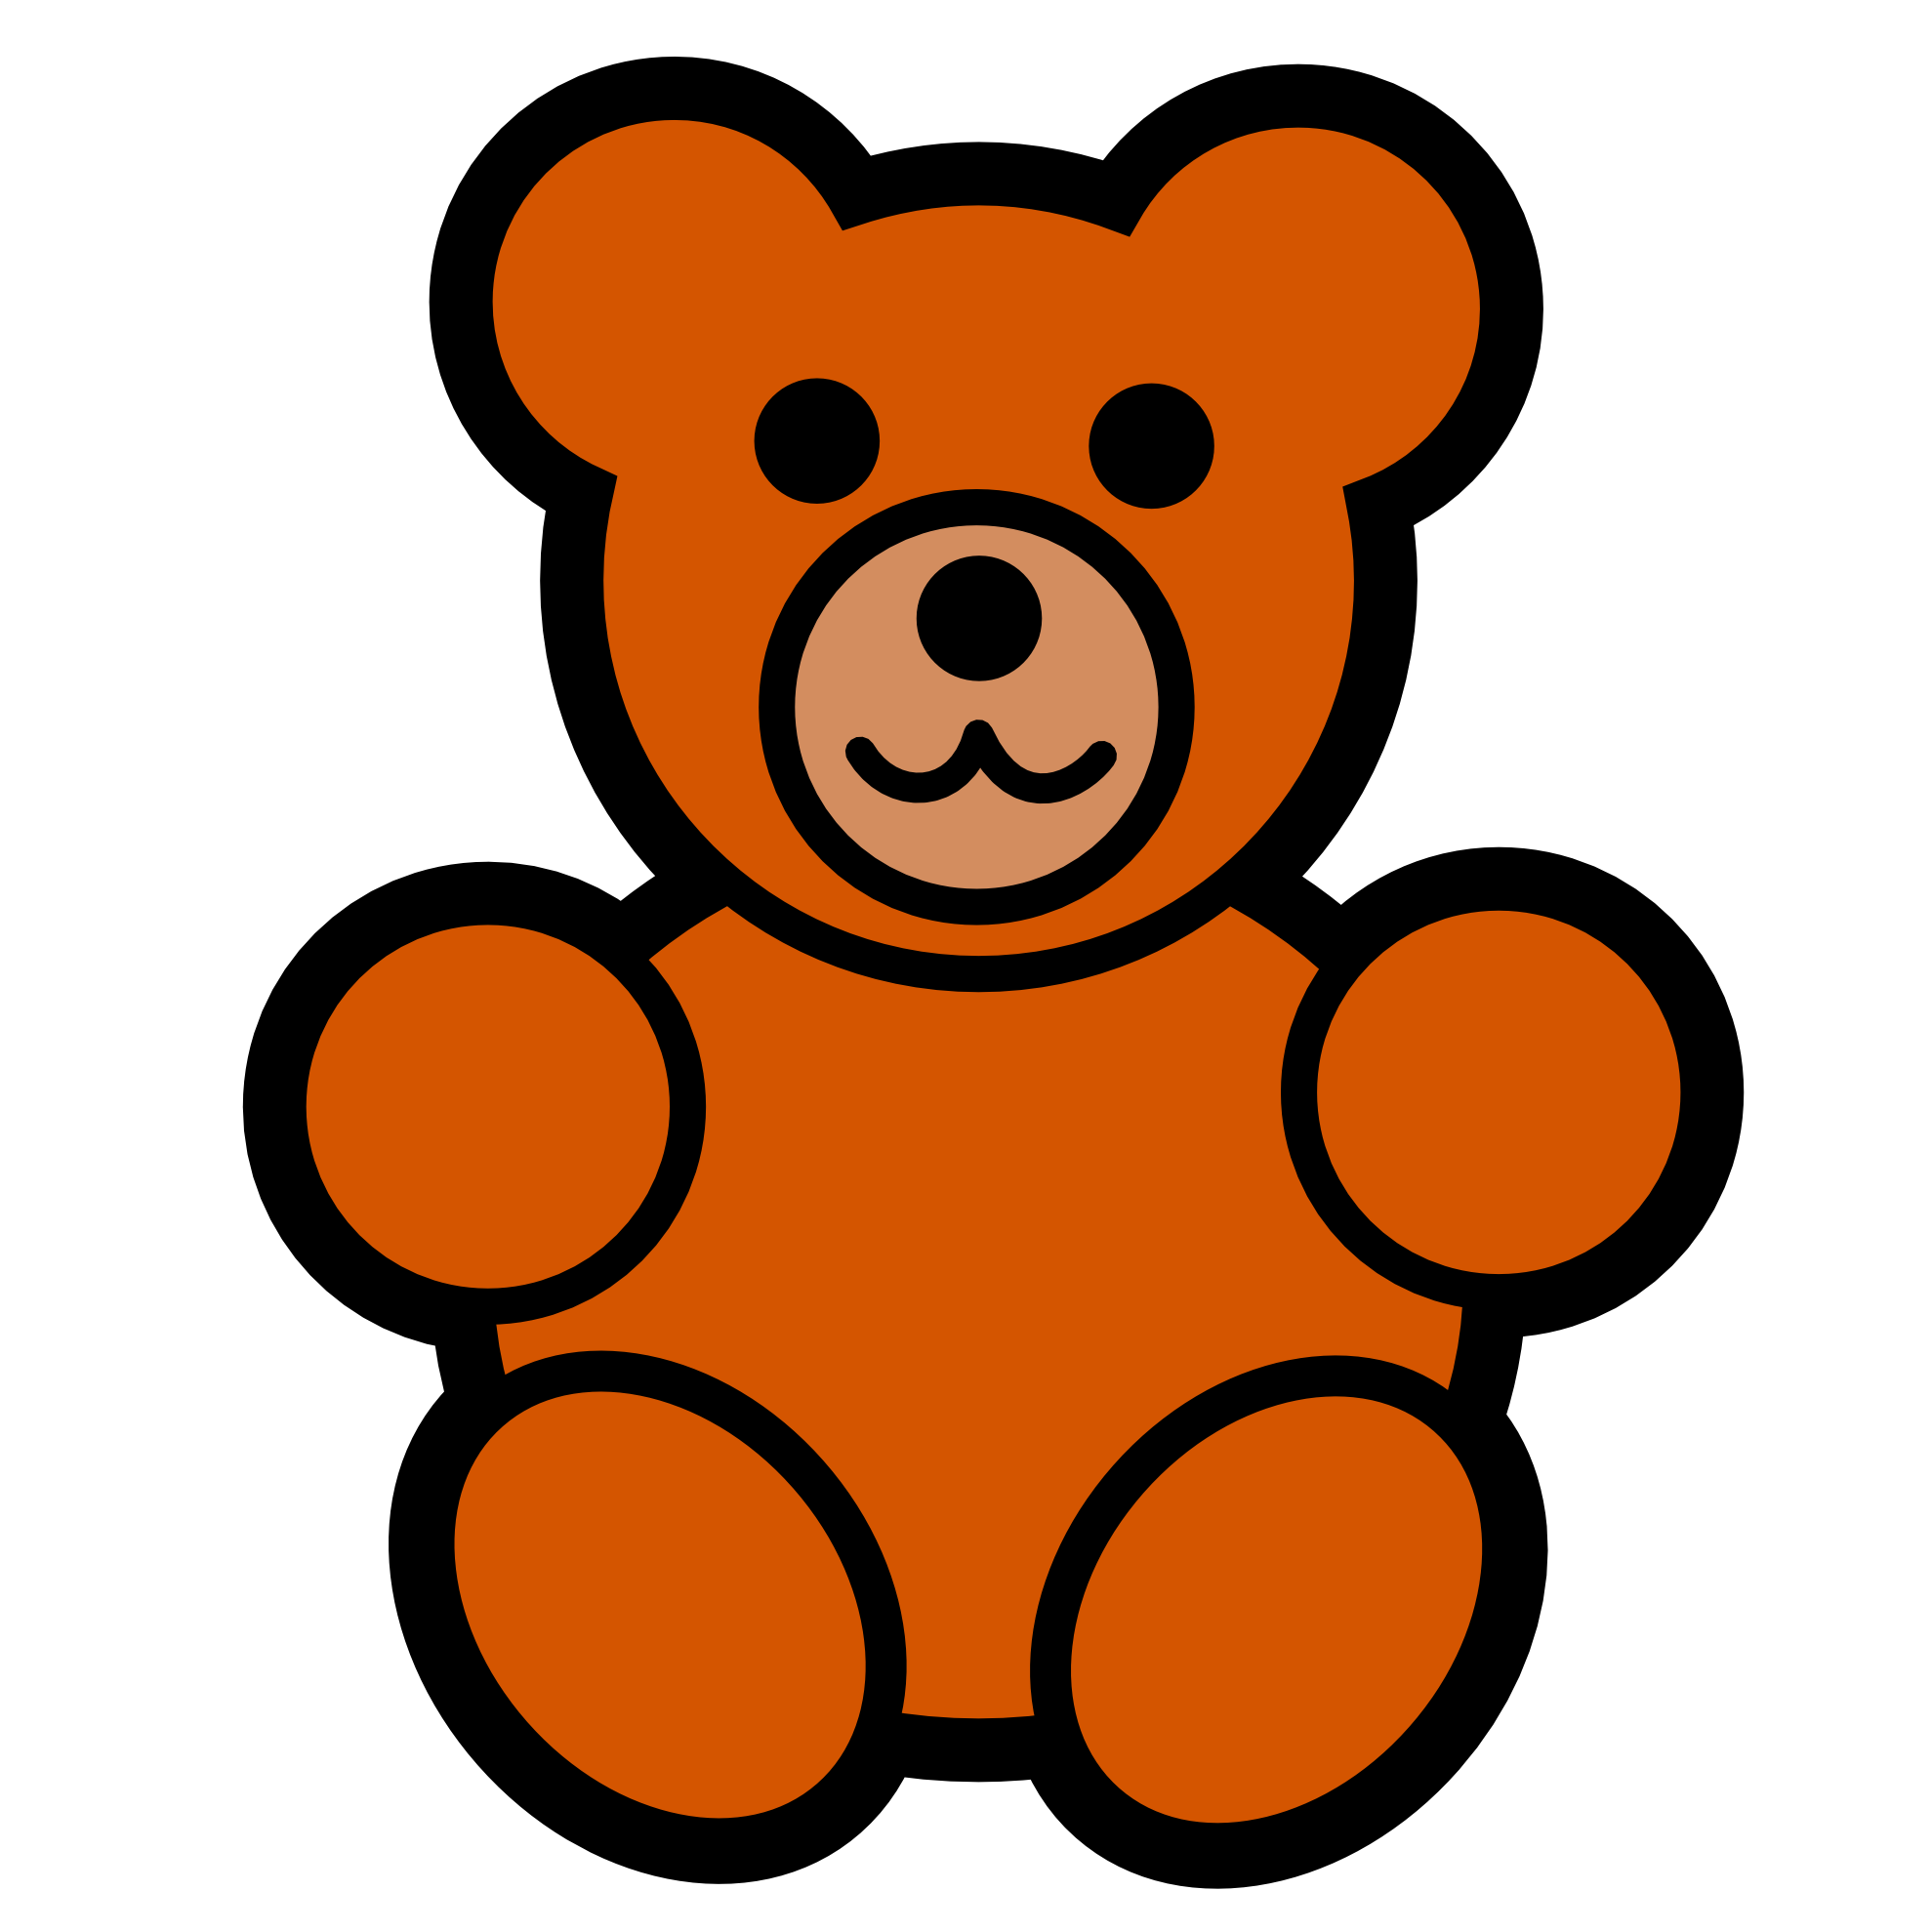 Shhh teddy bear clipart